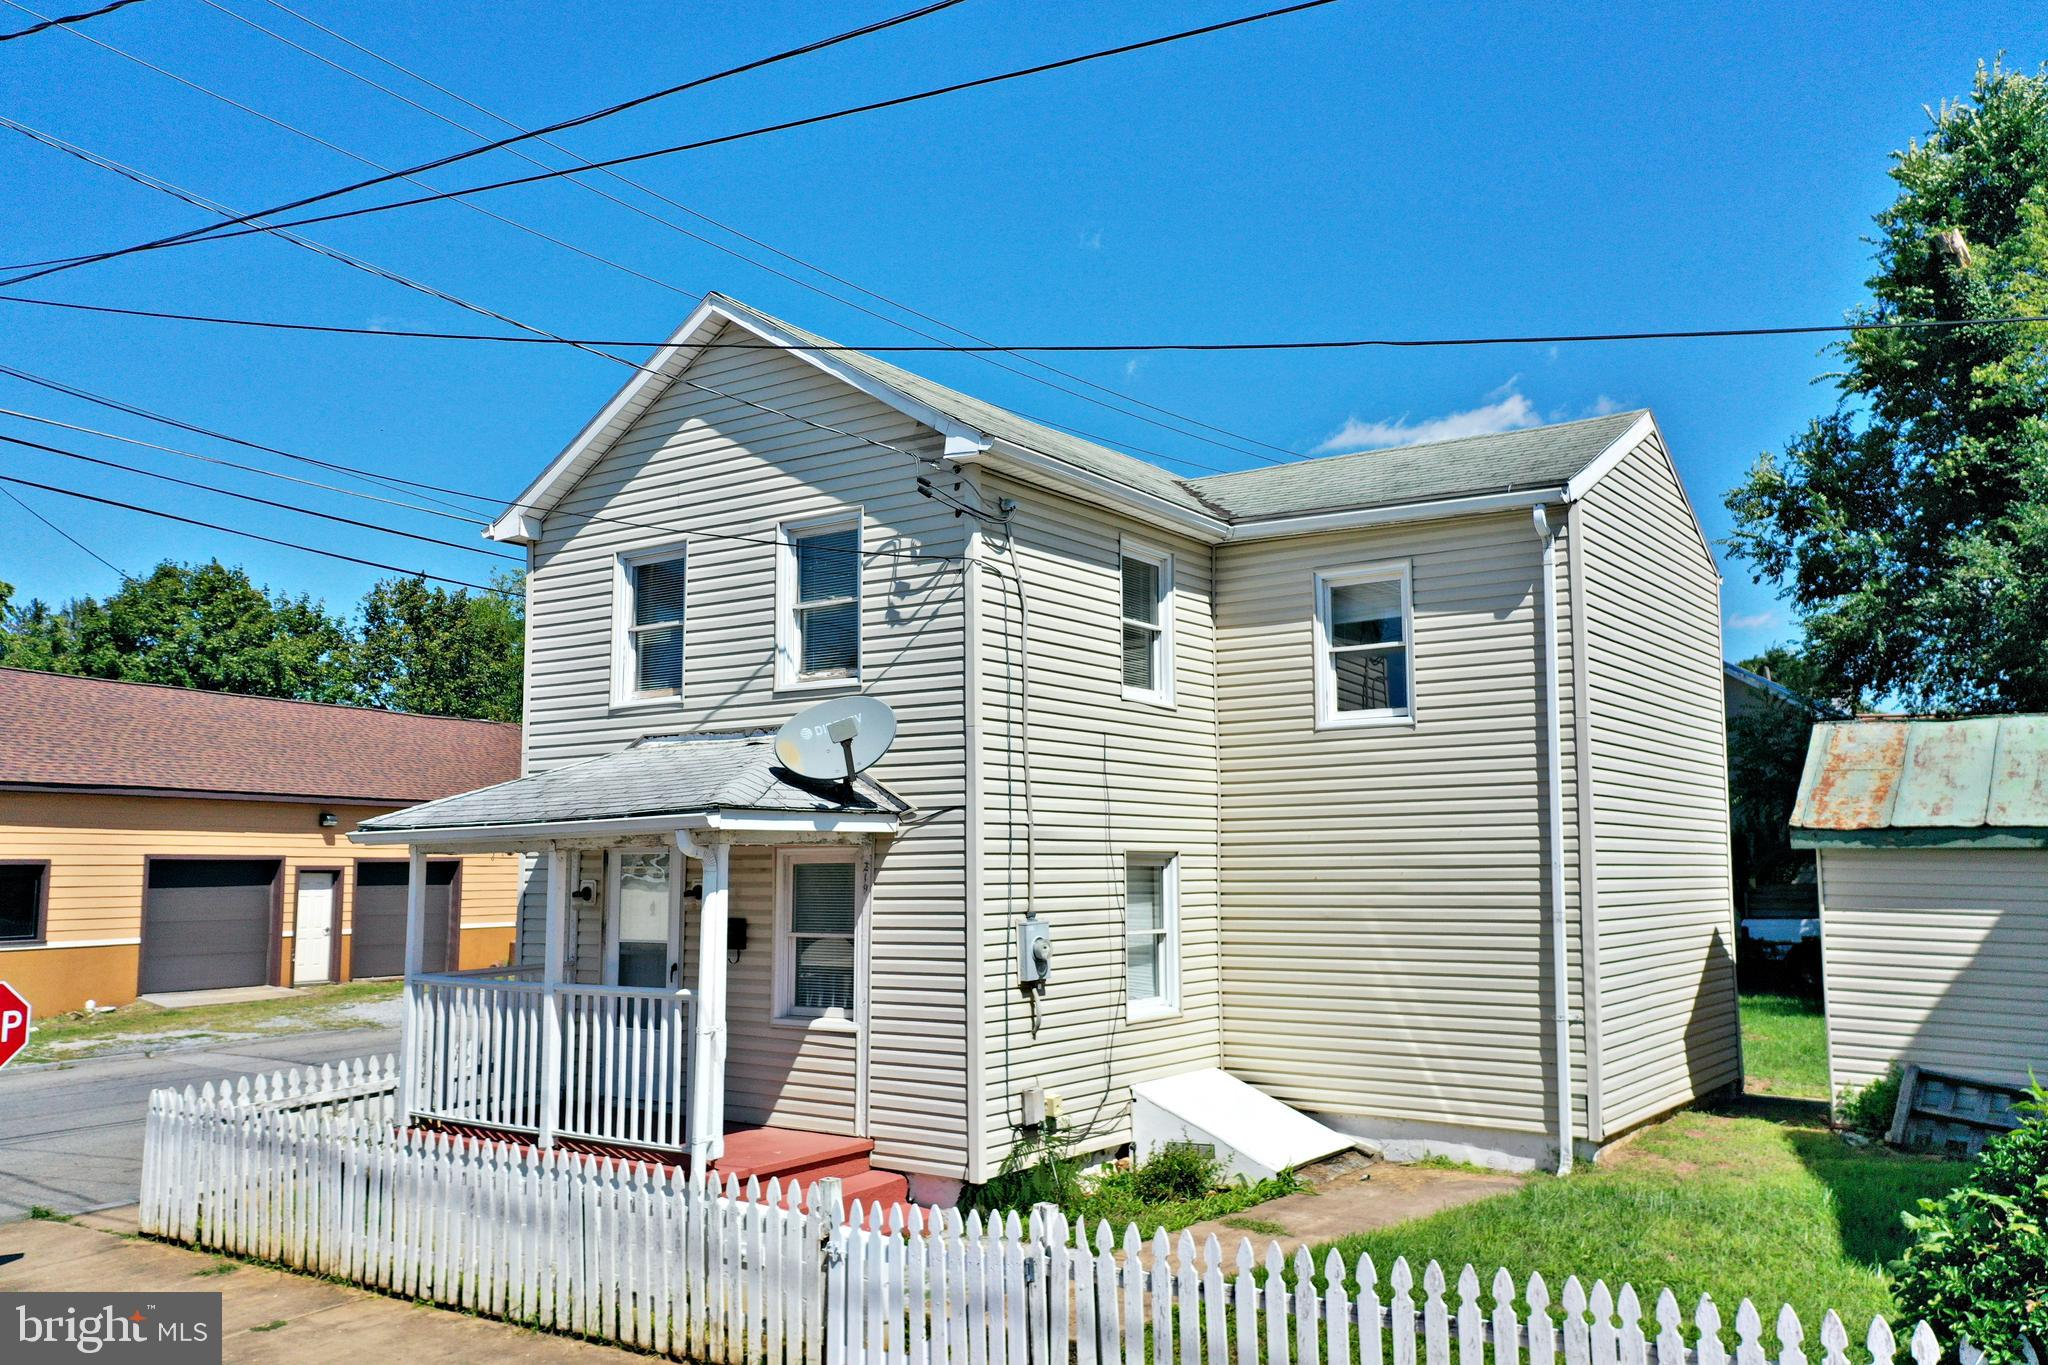 PROPERTY IS SOLD AS IS WHERE IS - Great investment opportunity and close to downtown shopping/conven